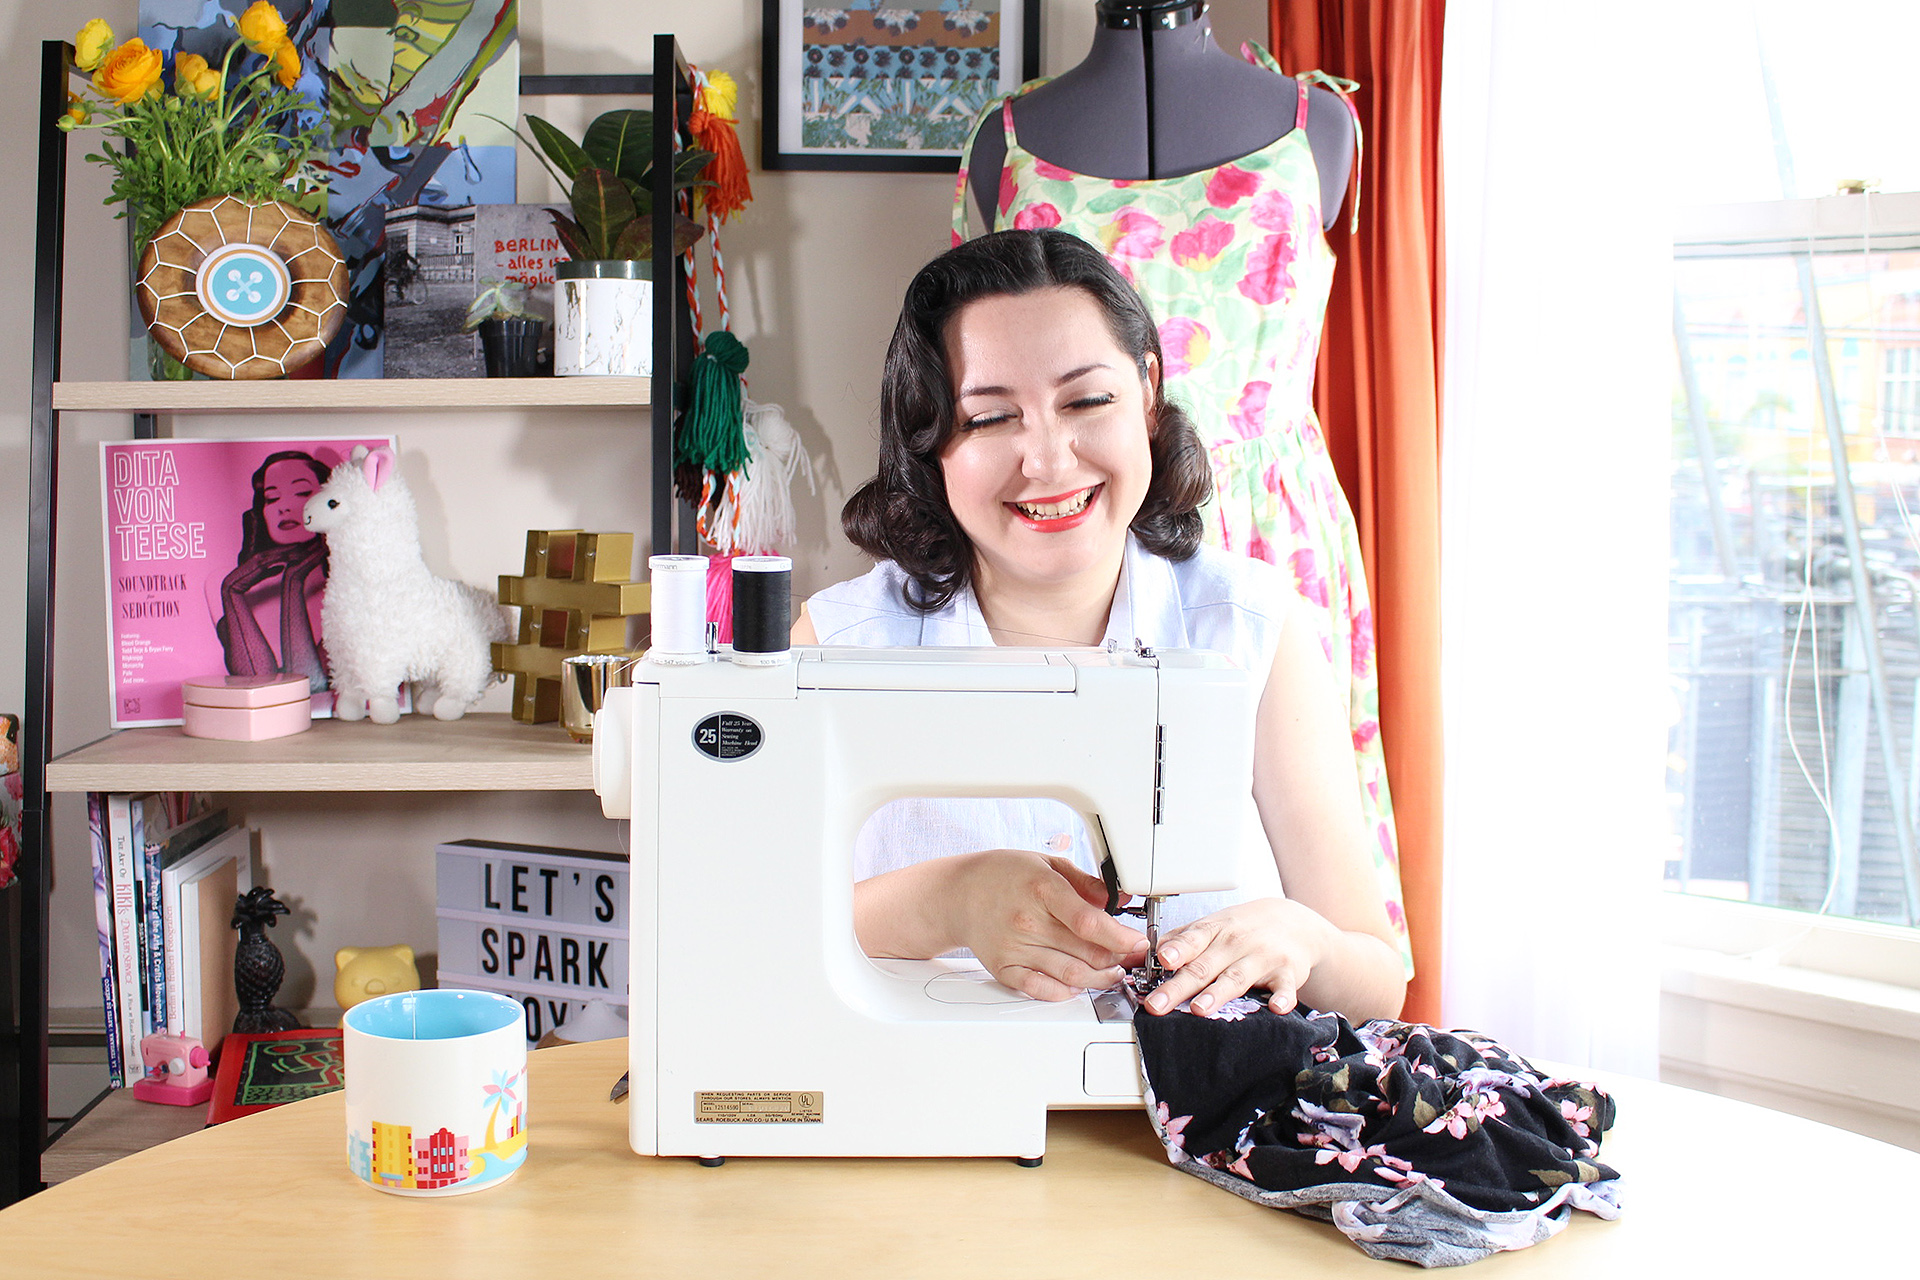 How to sew vintage, tutorials and tips for handmade clothing | Vintage on Tap